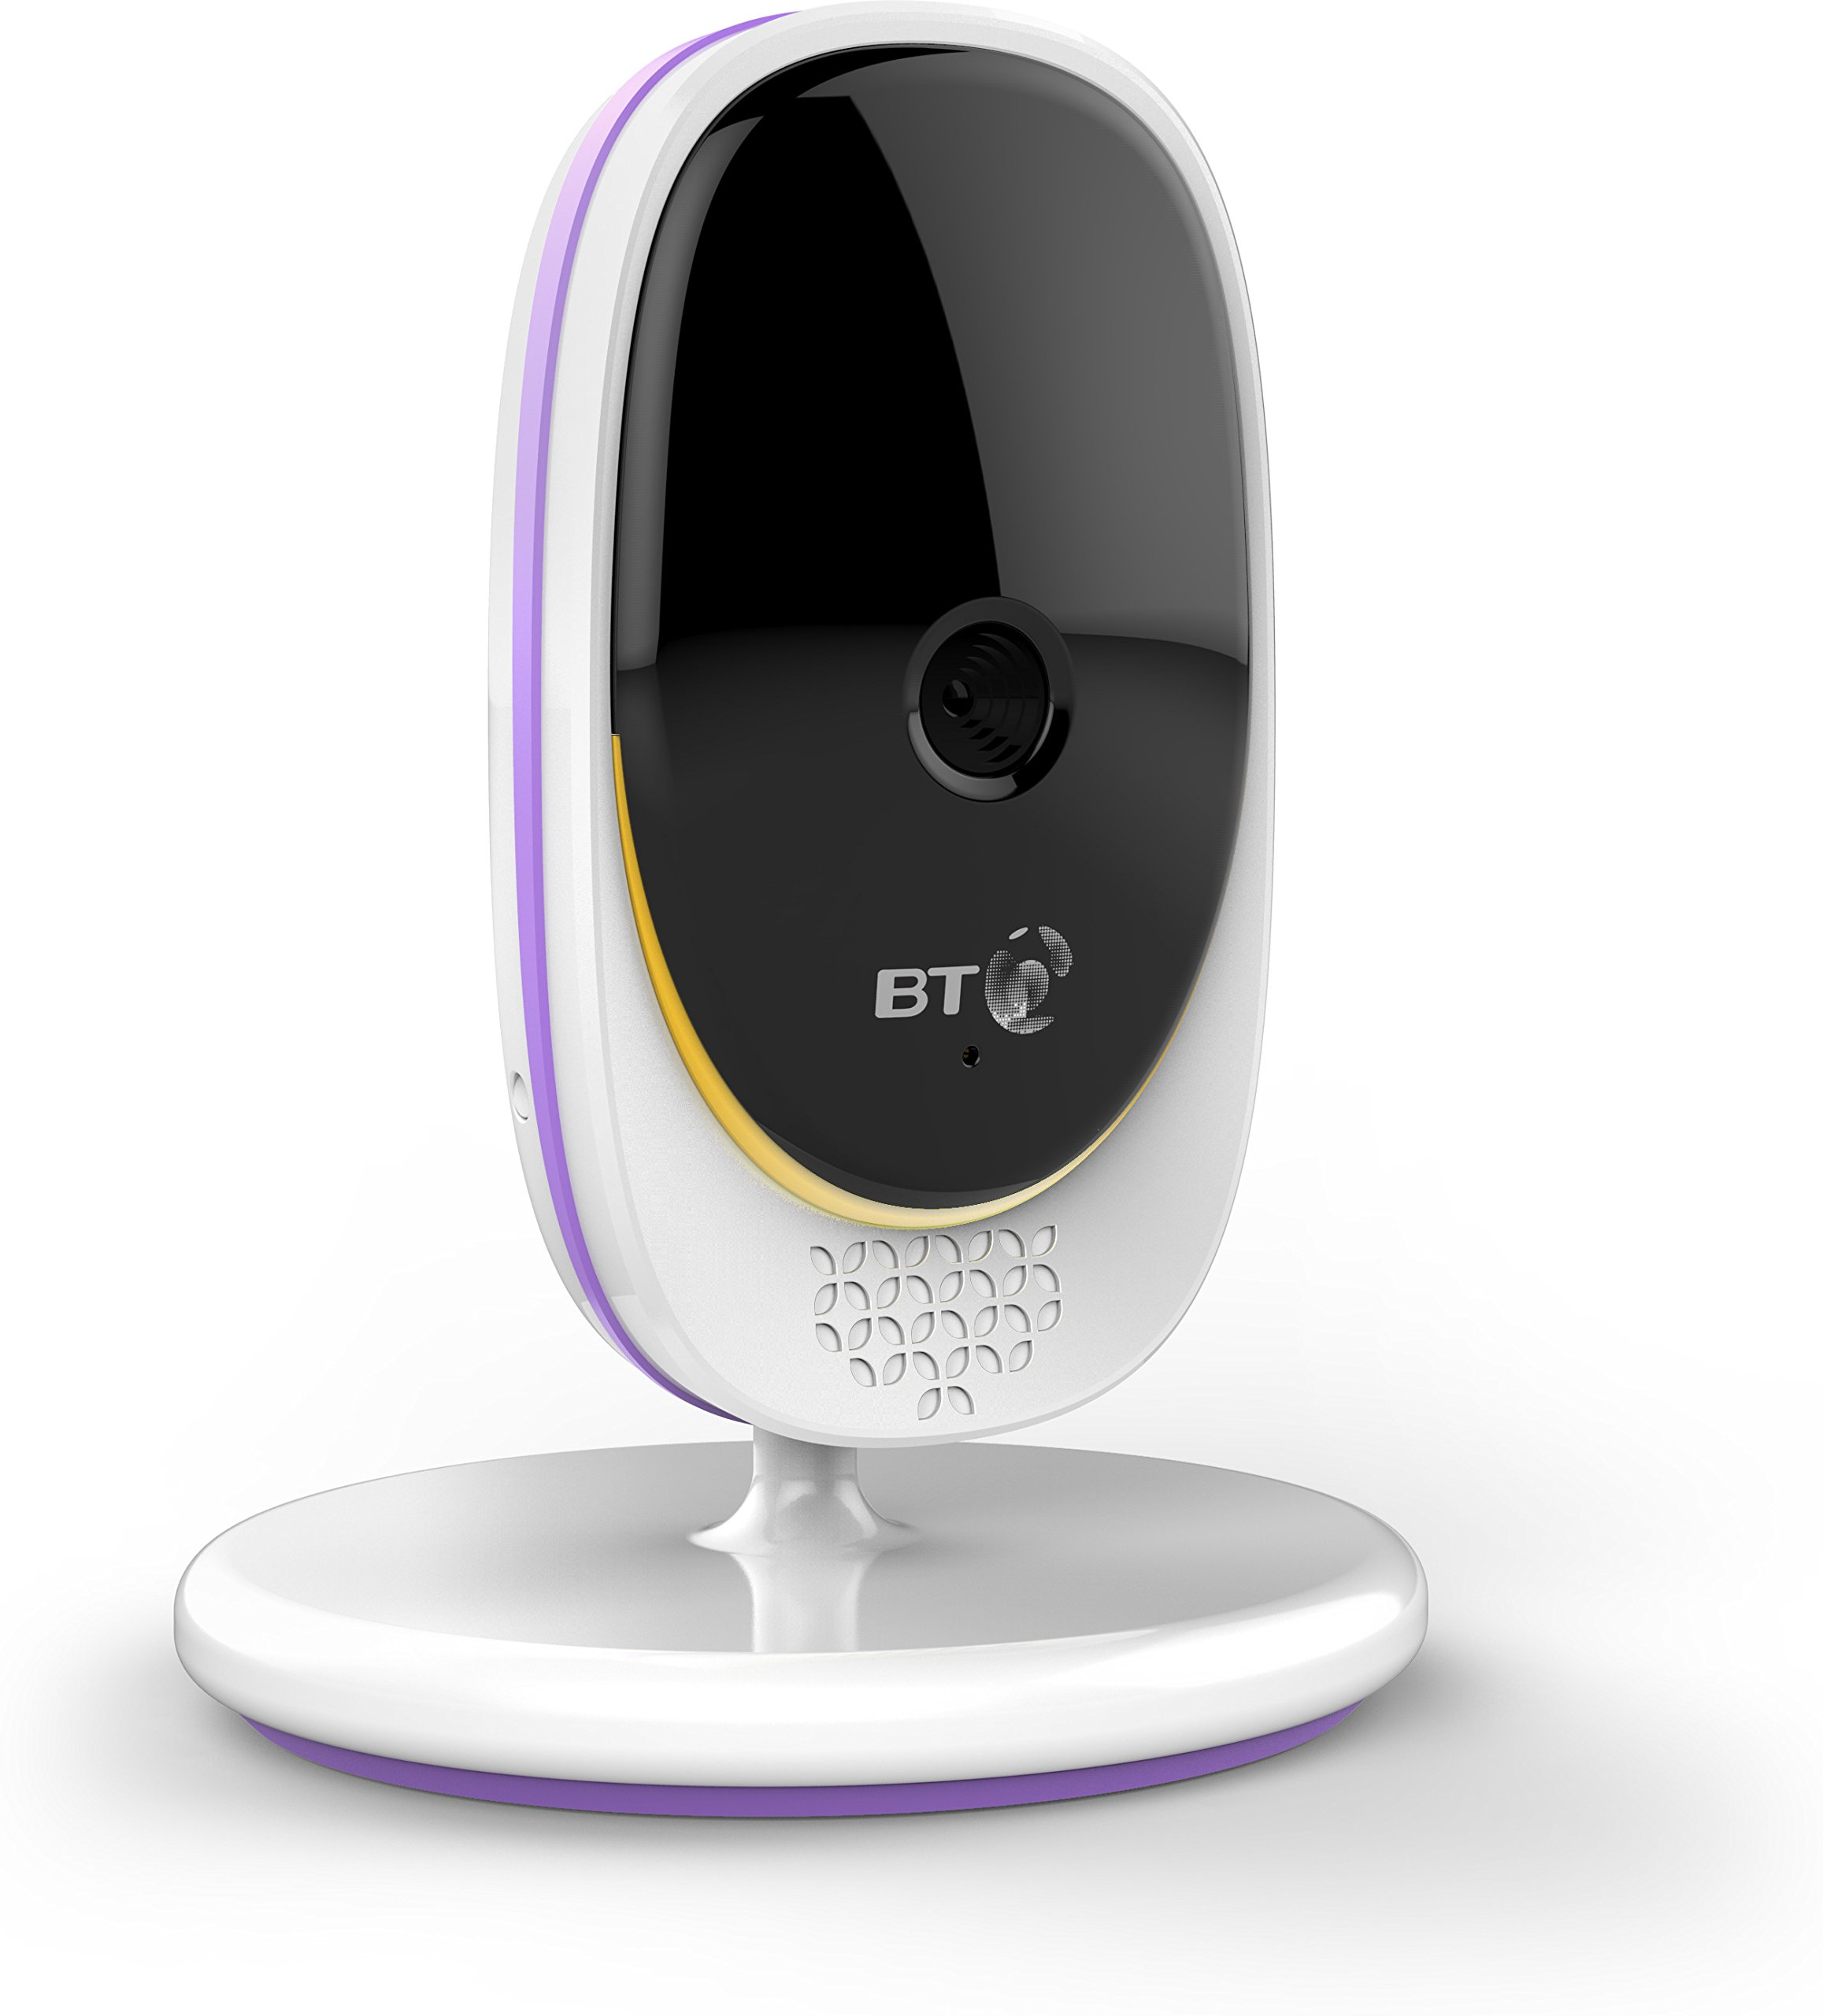 BT Video Baby Monitor 2000 BT 2 inch screen with night vision Manual (non-remote) pan/tilt mechanism Portable parent unit so you can move freely around your home 3